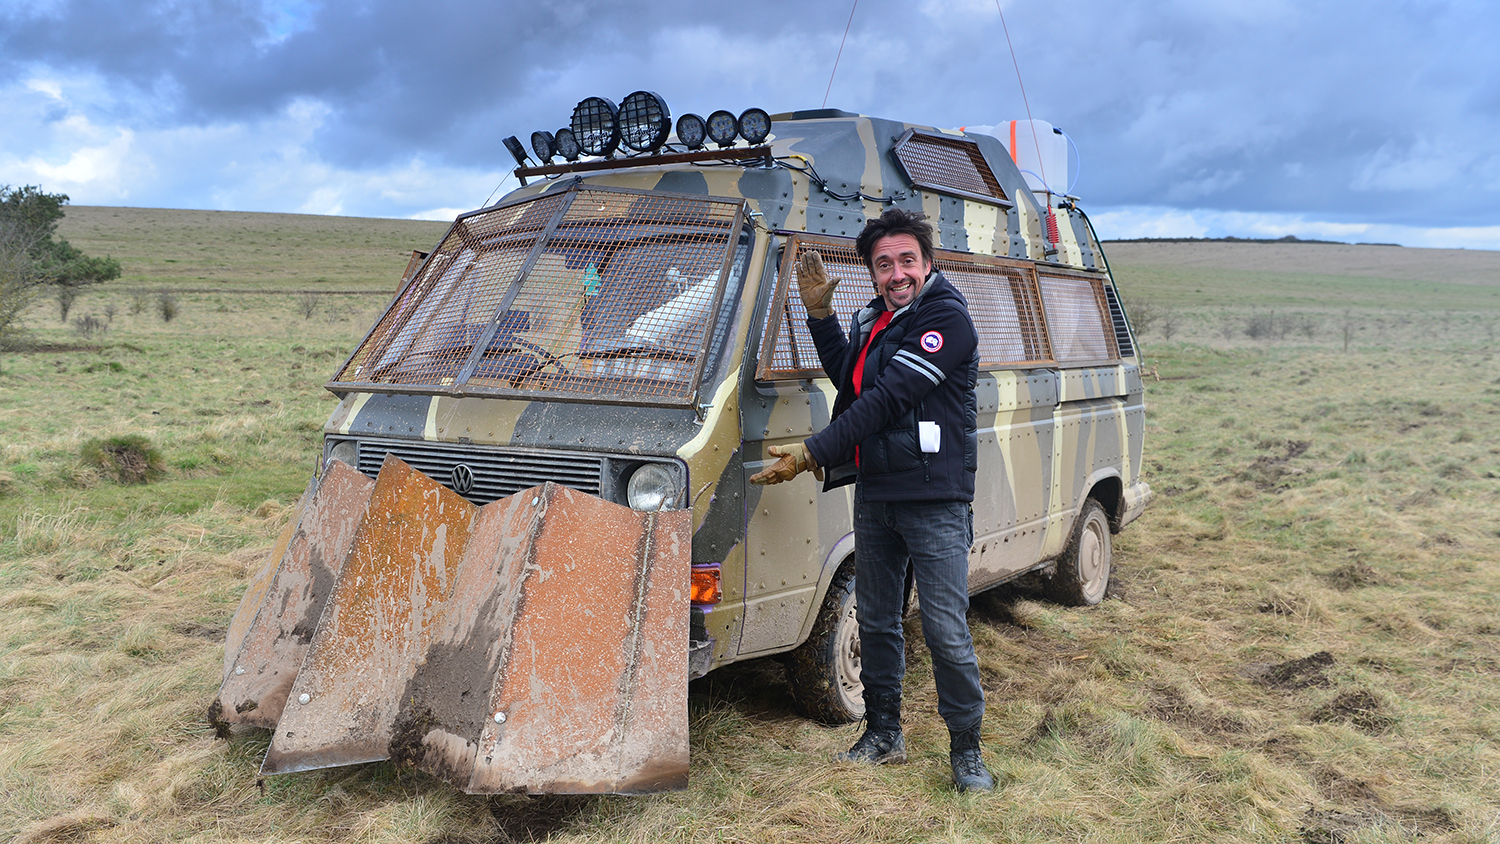 The Grand Tour Episode 3 >> Berks To The Future (TGT) | Top Gear Wiki | FANDOM powered ...